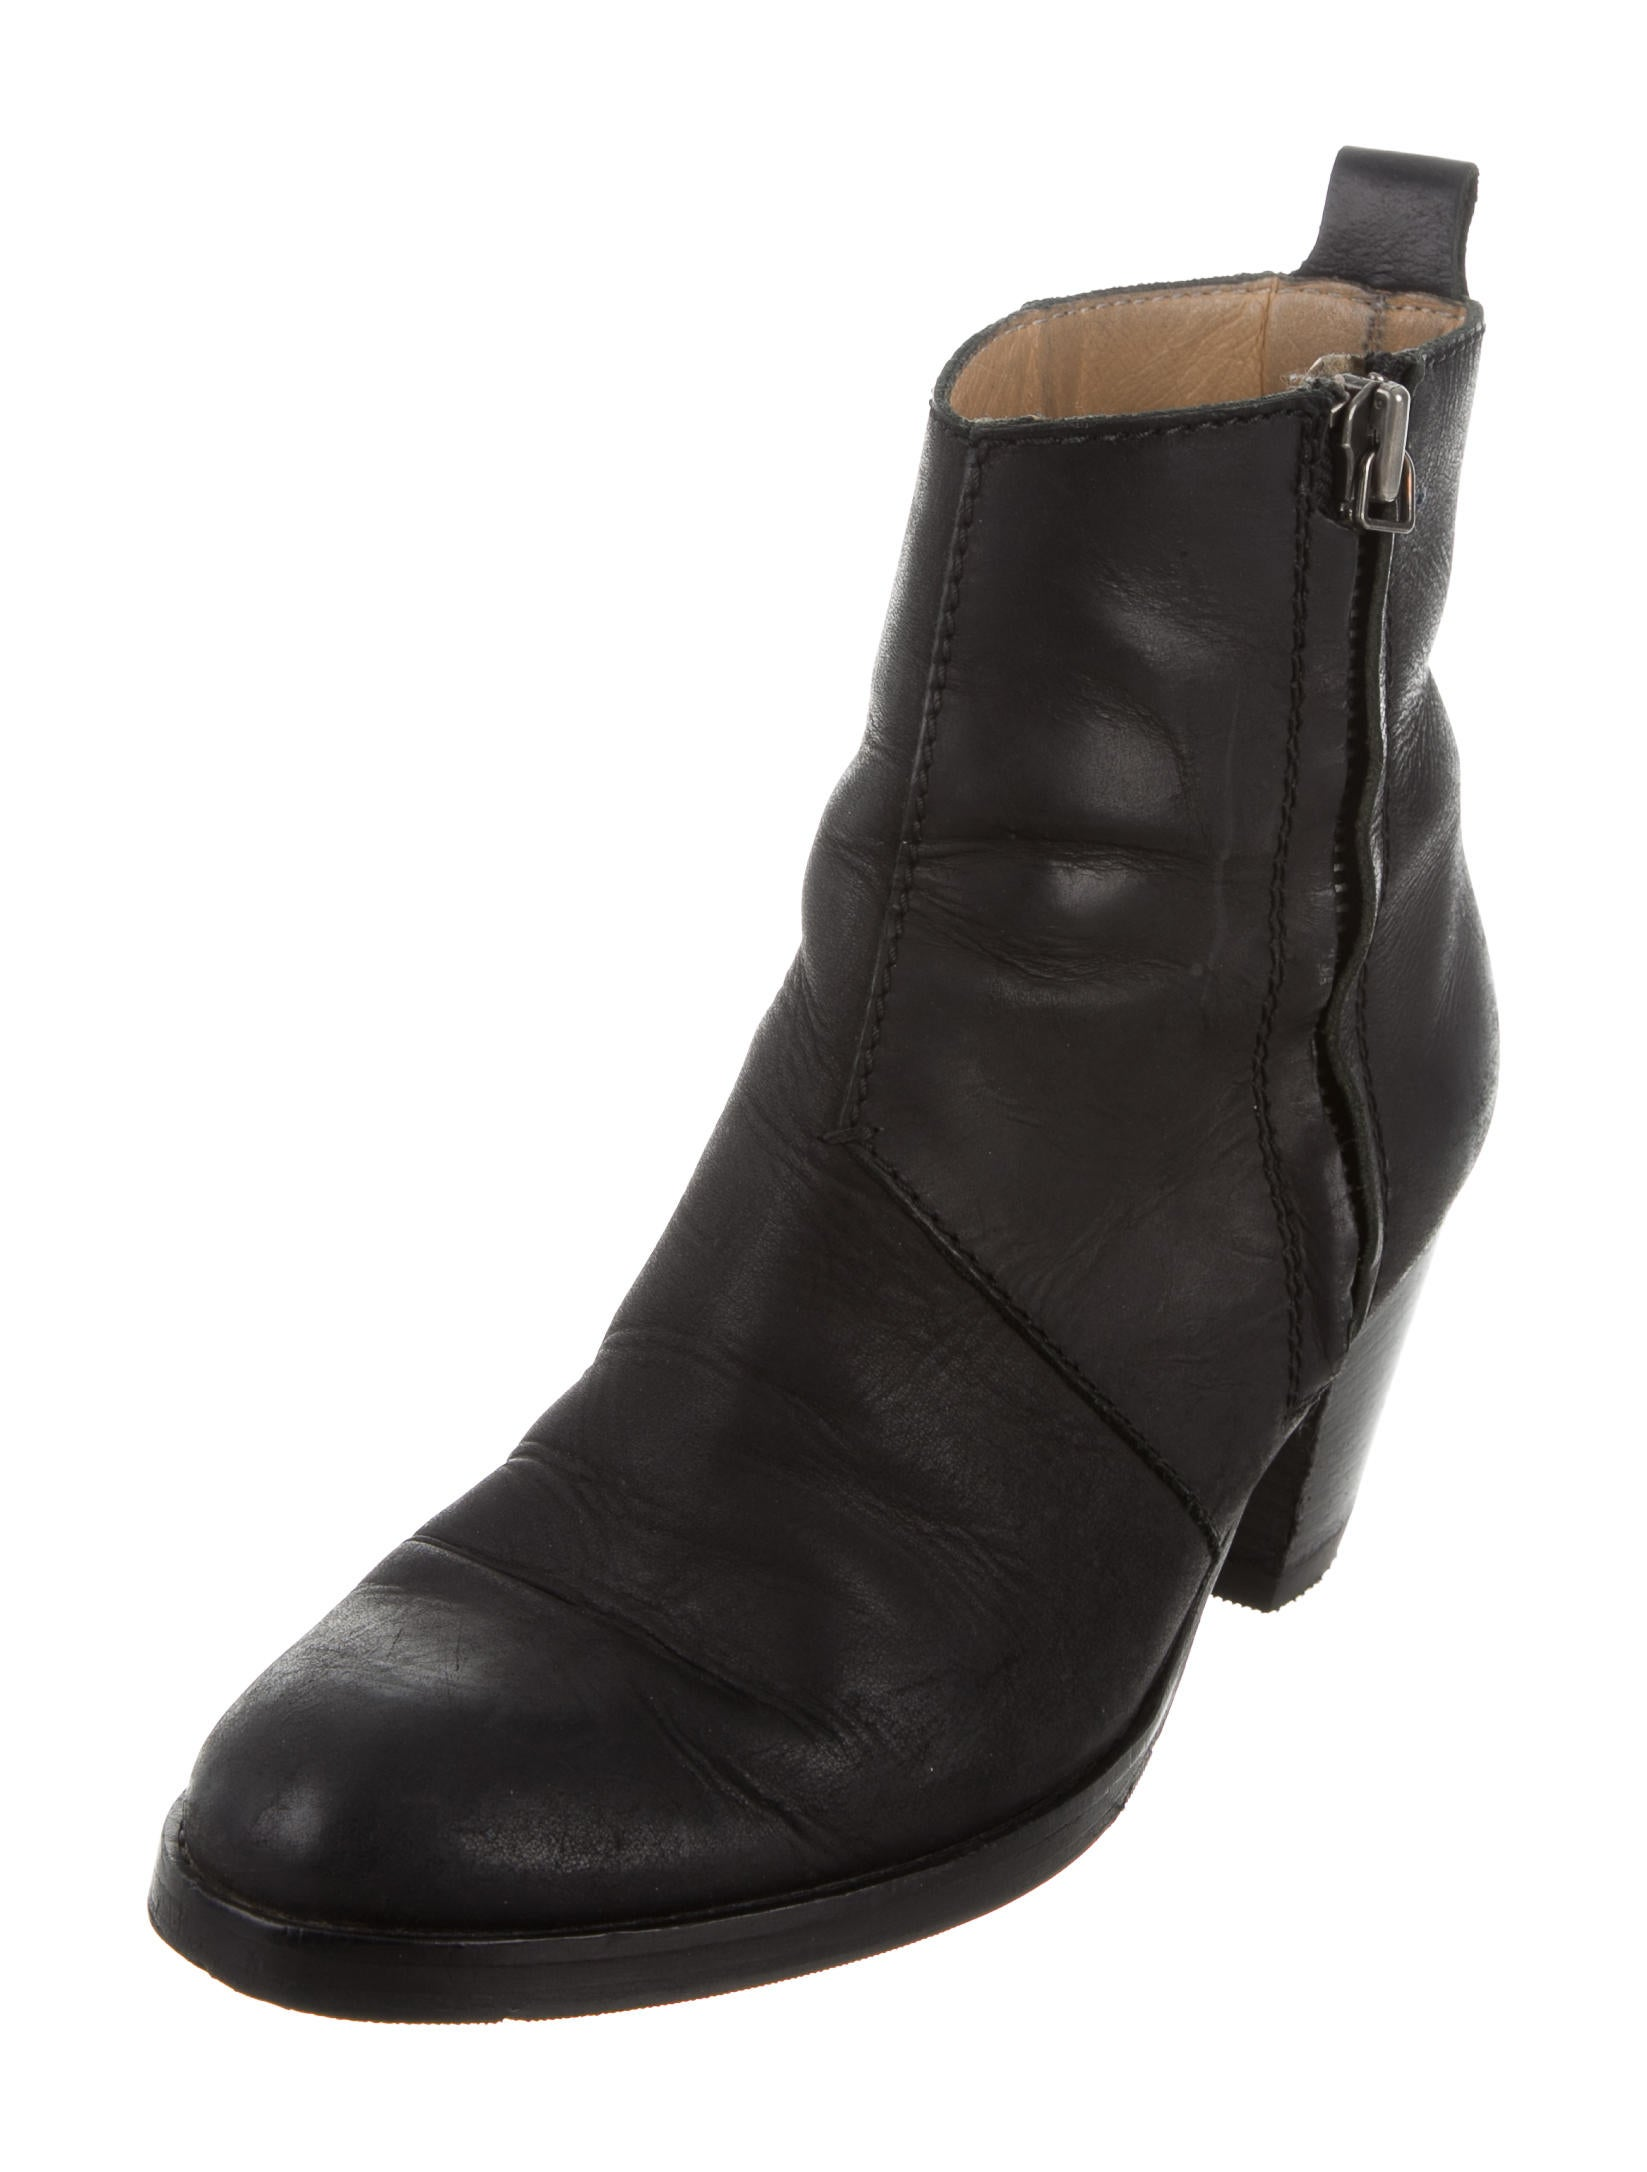 Acne Pistol Leather Ankle Boots - Shoes - ACN28862 | The RealReal